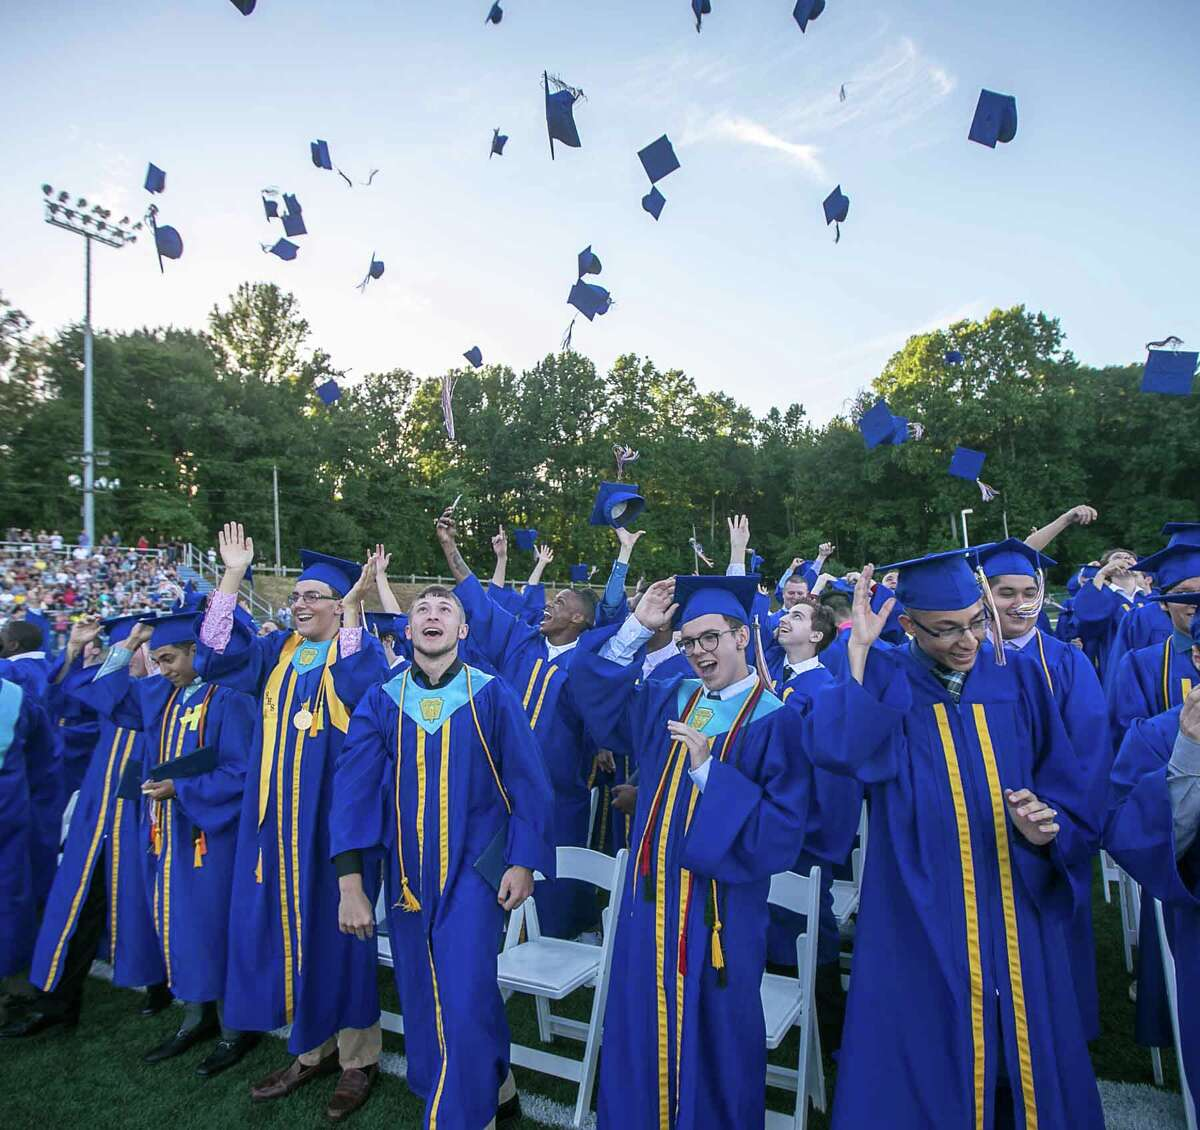 (John Vanacore/For Hearst Connecticut Media) Seymour High School Graduates toss their caps in the air in celebration at the conclusion of commencement exercises Tueday evening.